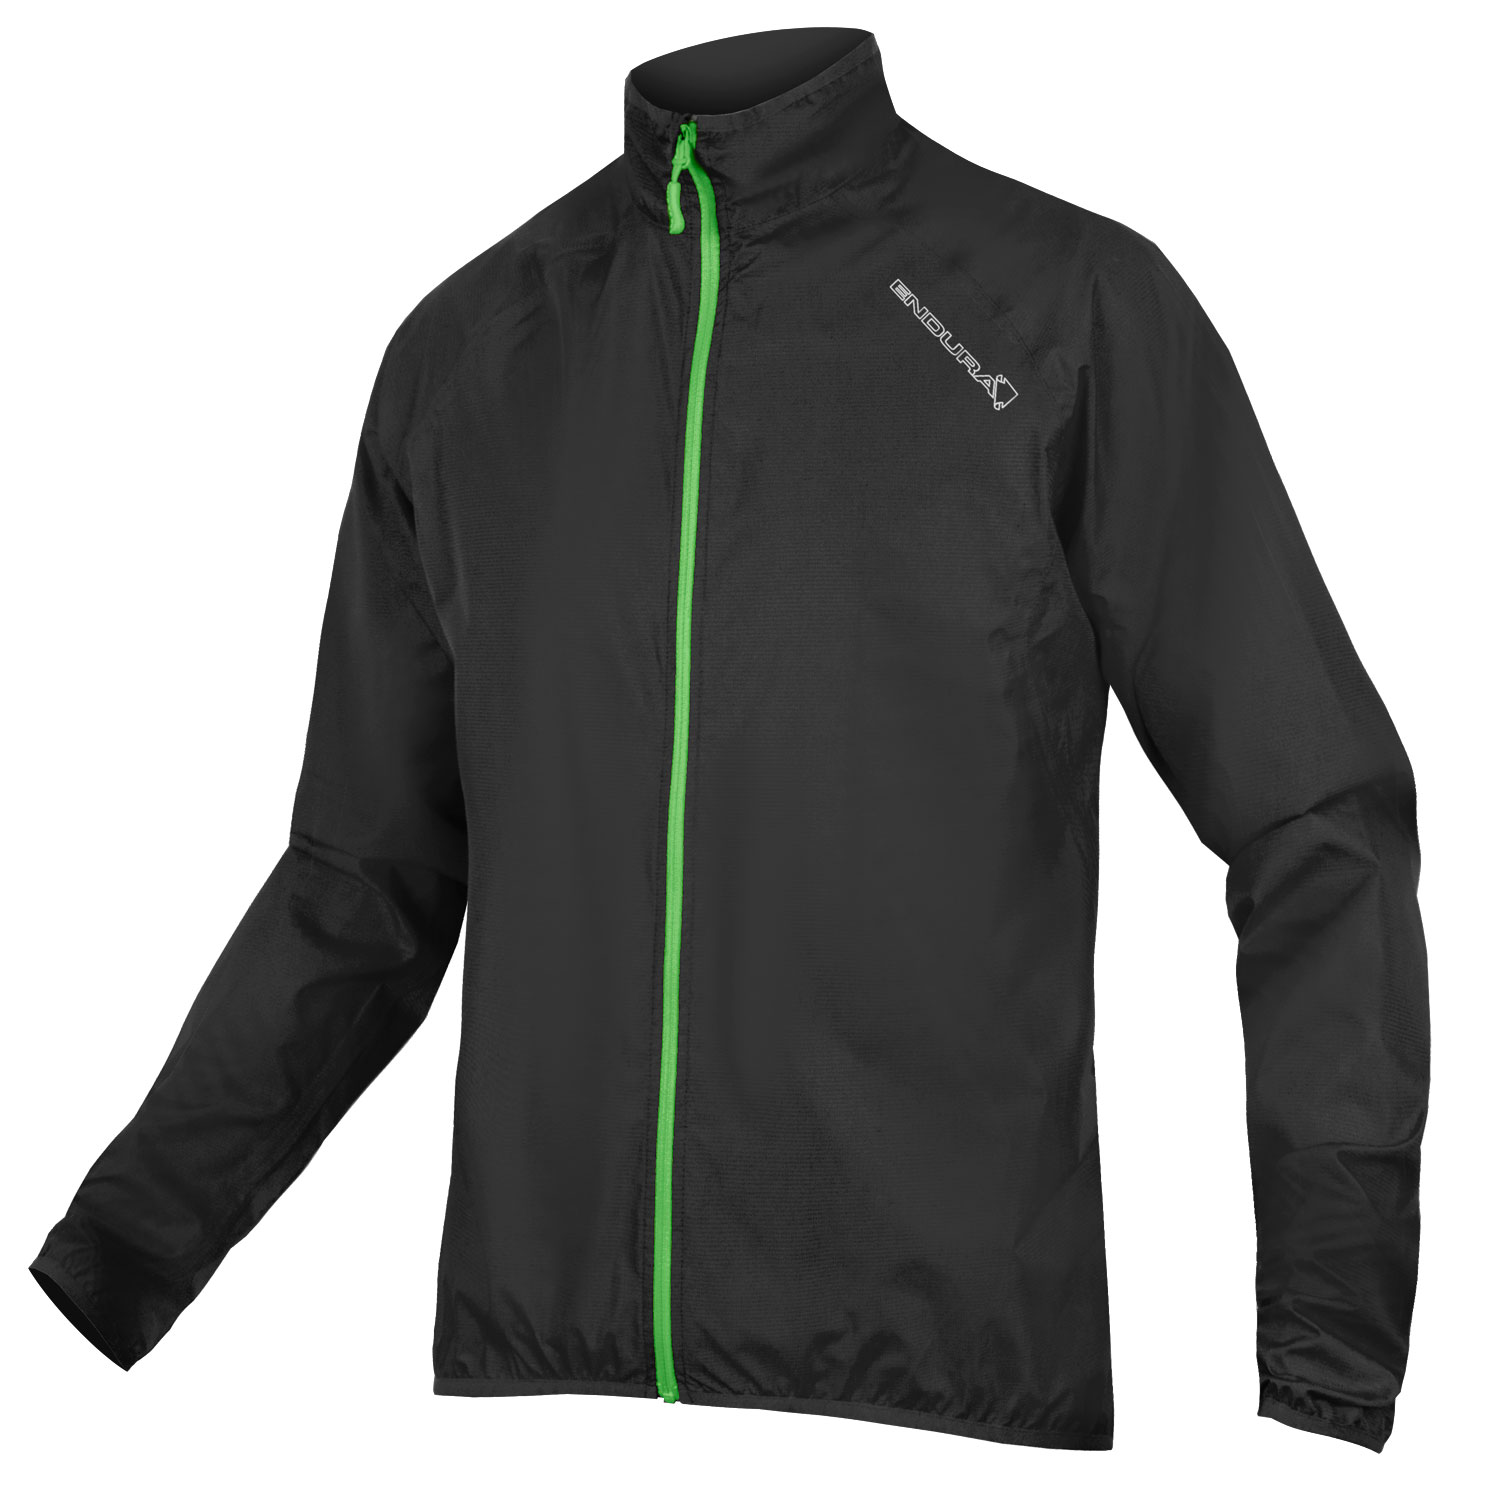 Xtract Jacket front